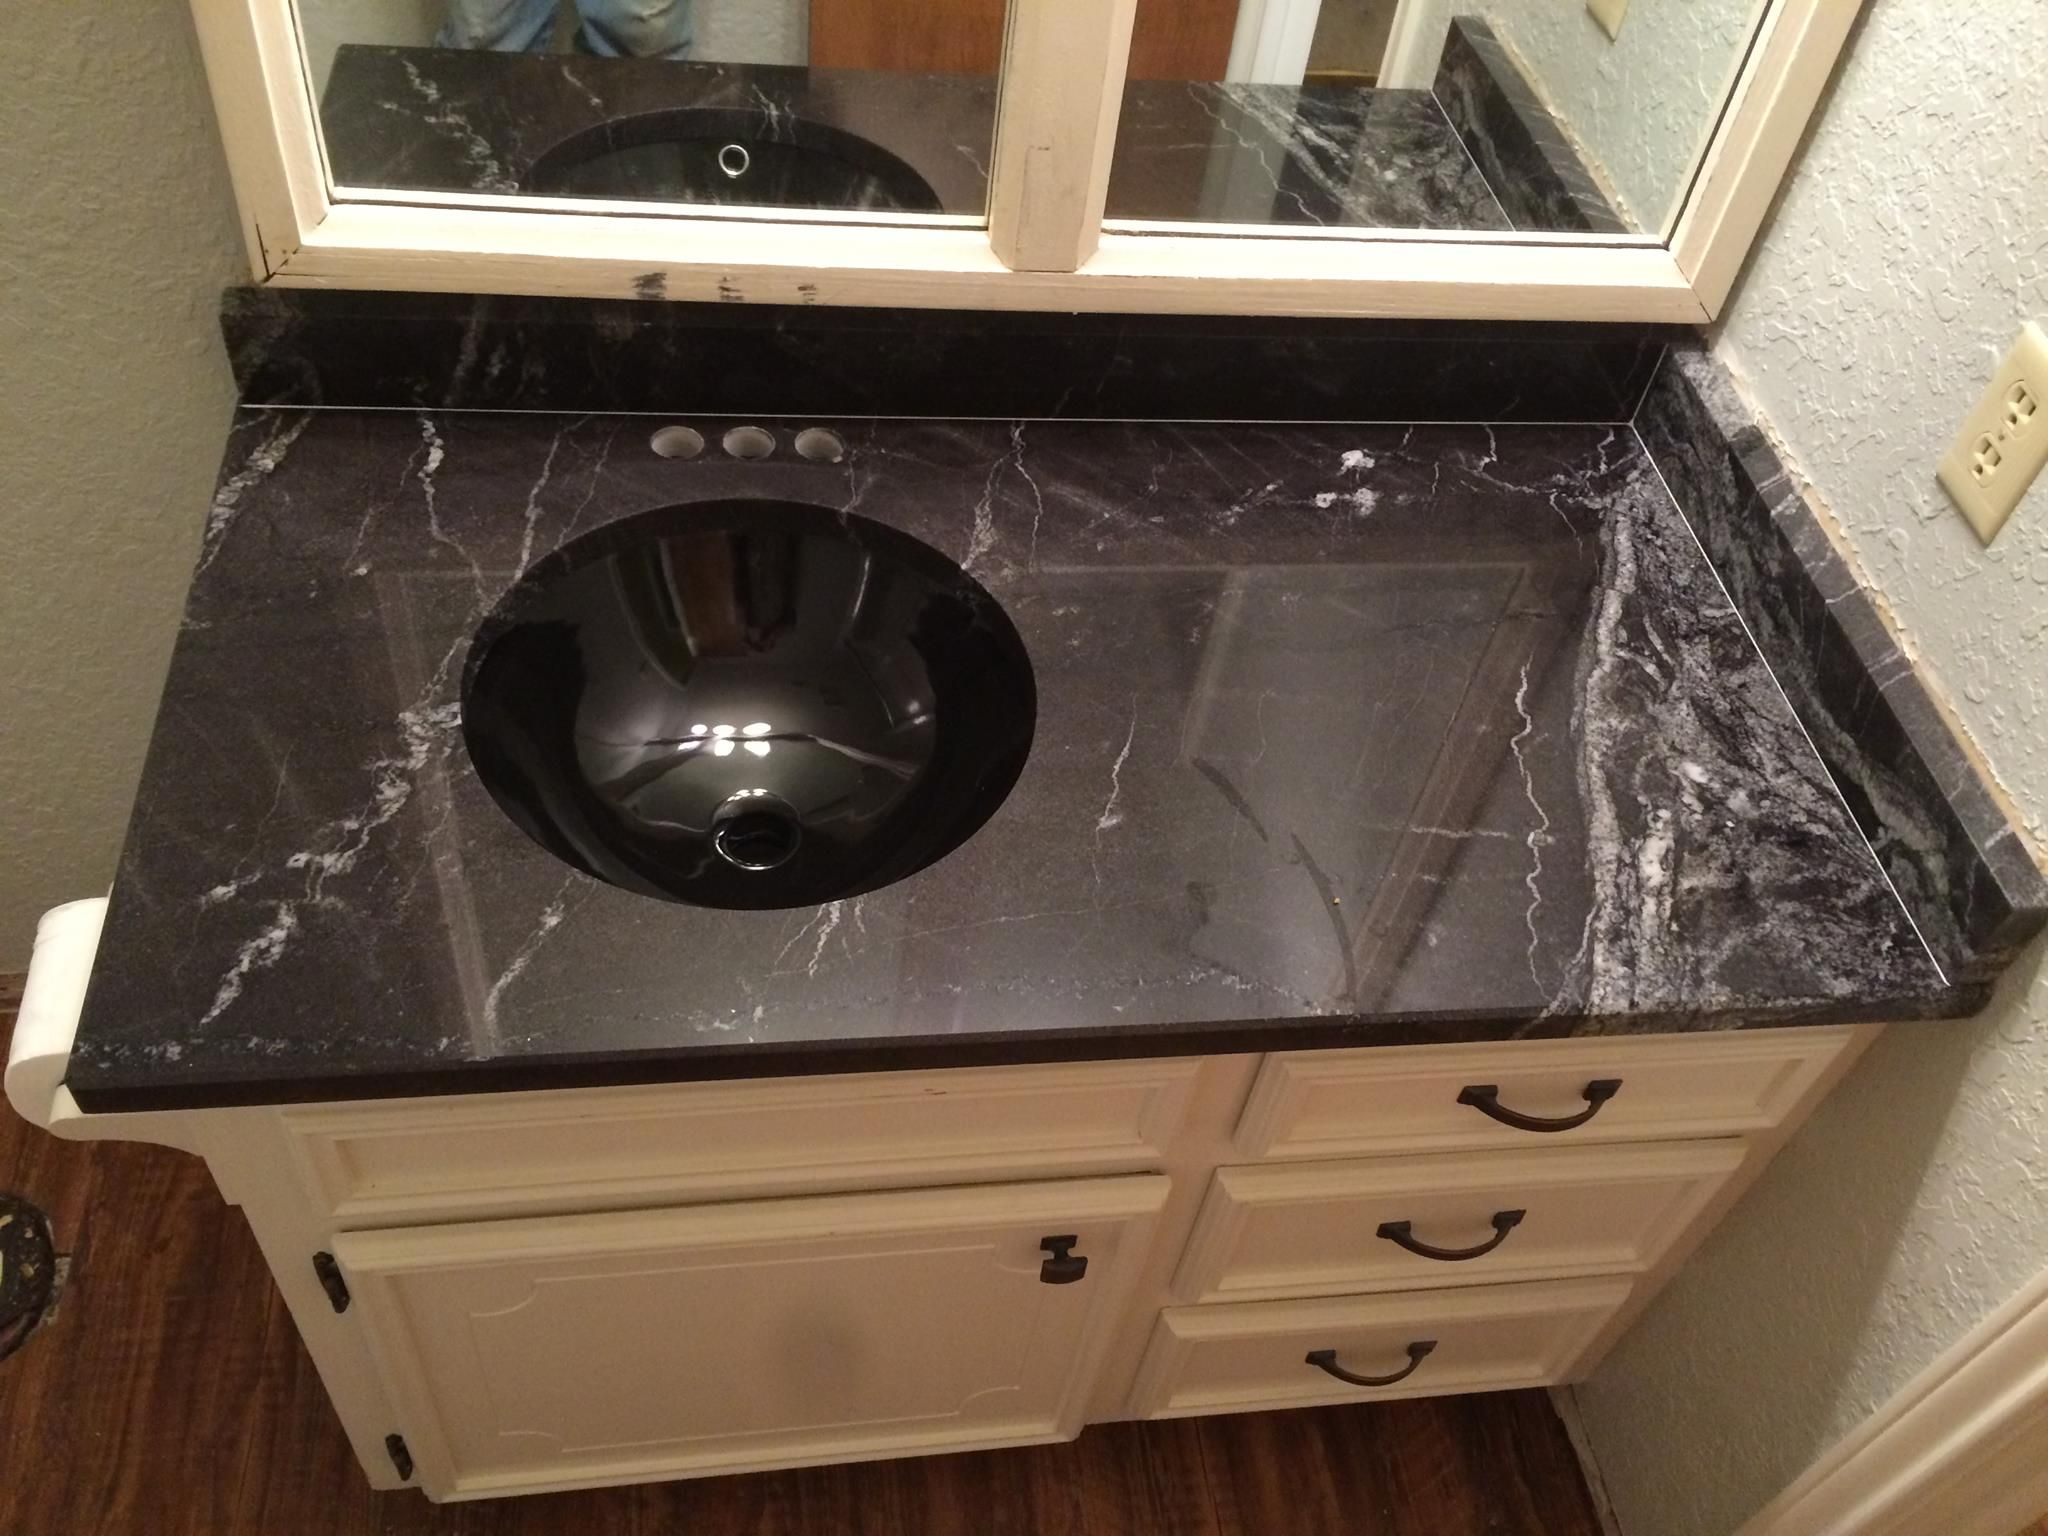 Black Sink And Countertop In Bathroom Arabian Nights Granite